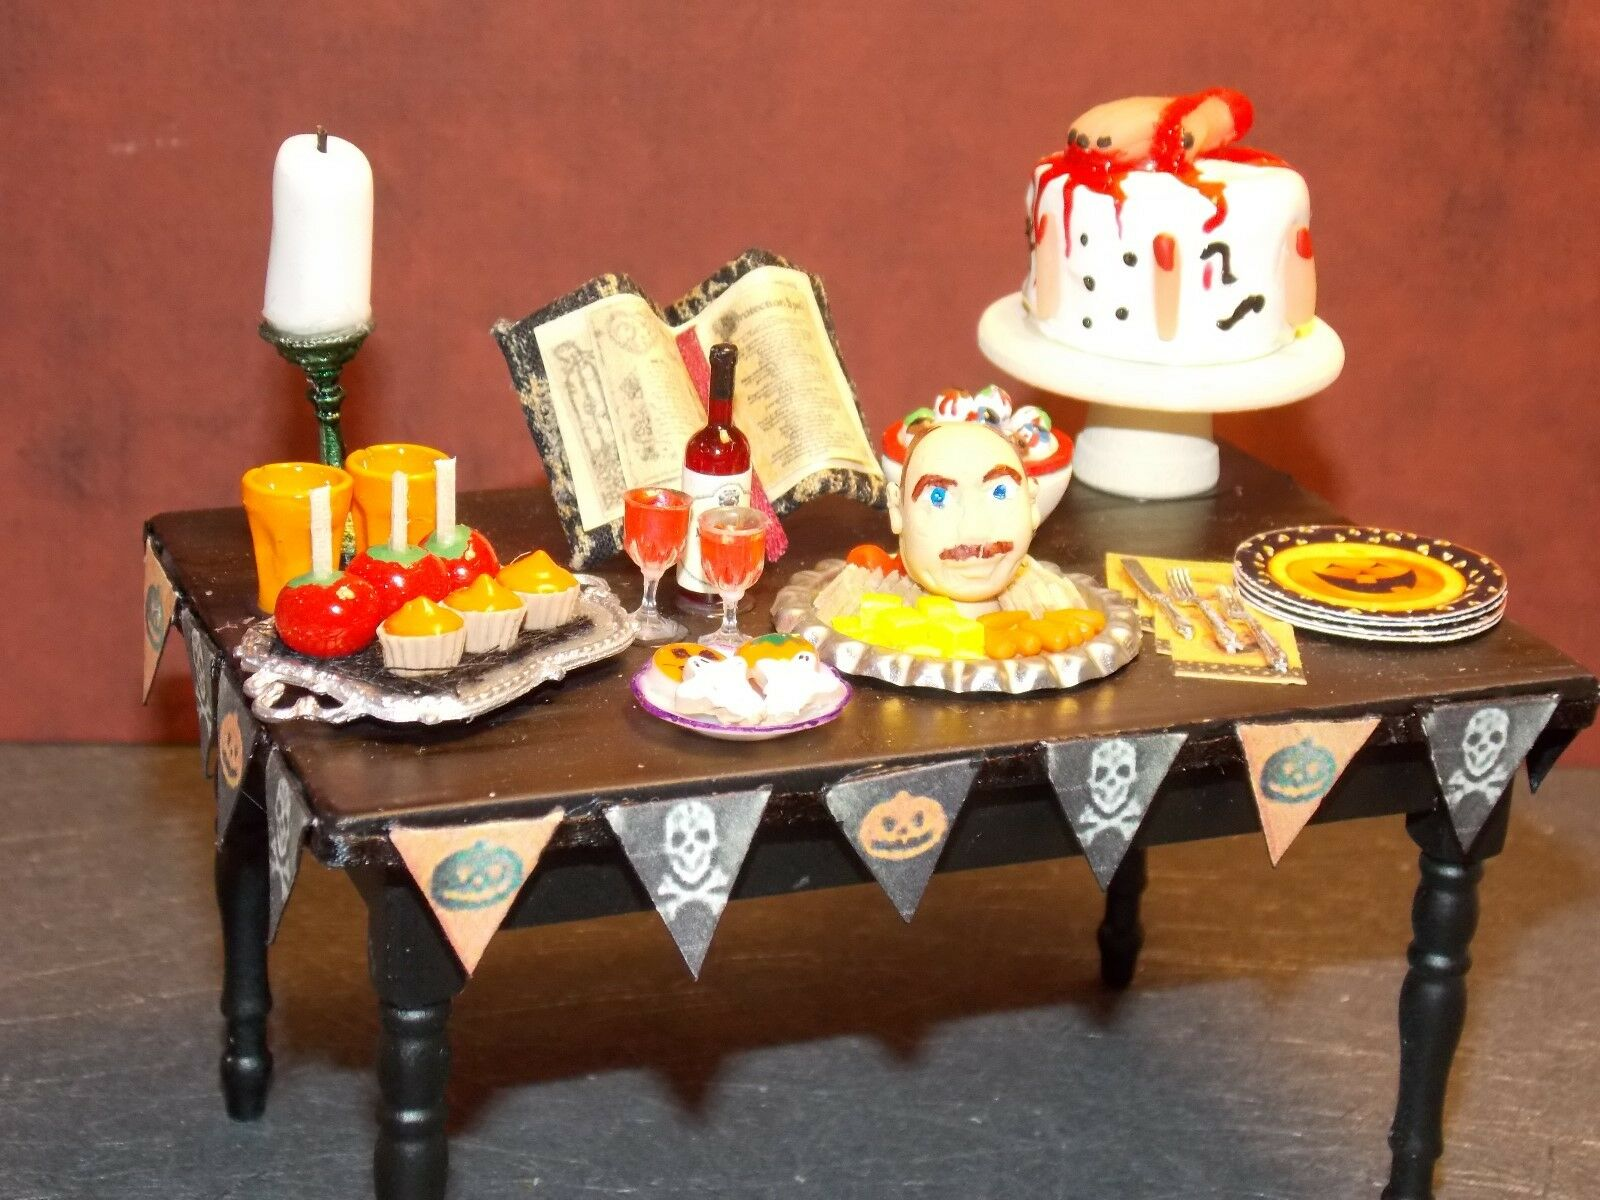 Dollhouse Miniature Halloween Party Table Food 1:12 scale Dollys Gallery Gallery Gallery E29 f86a28